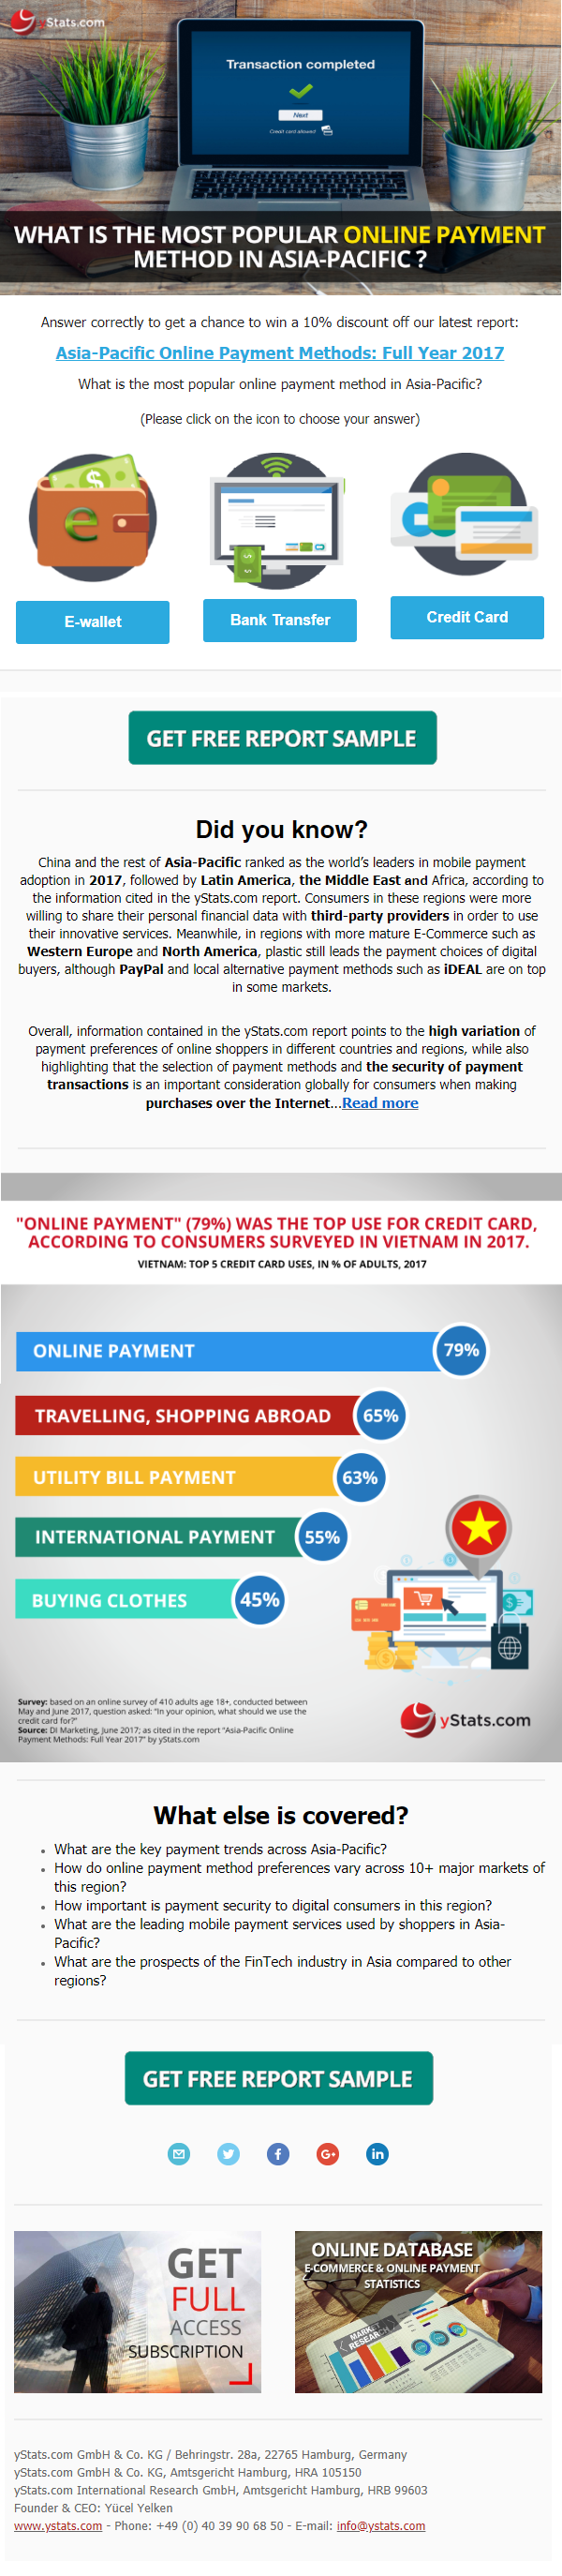 online payment methods in asia 2017